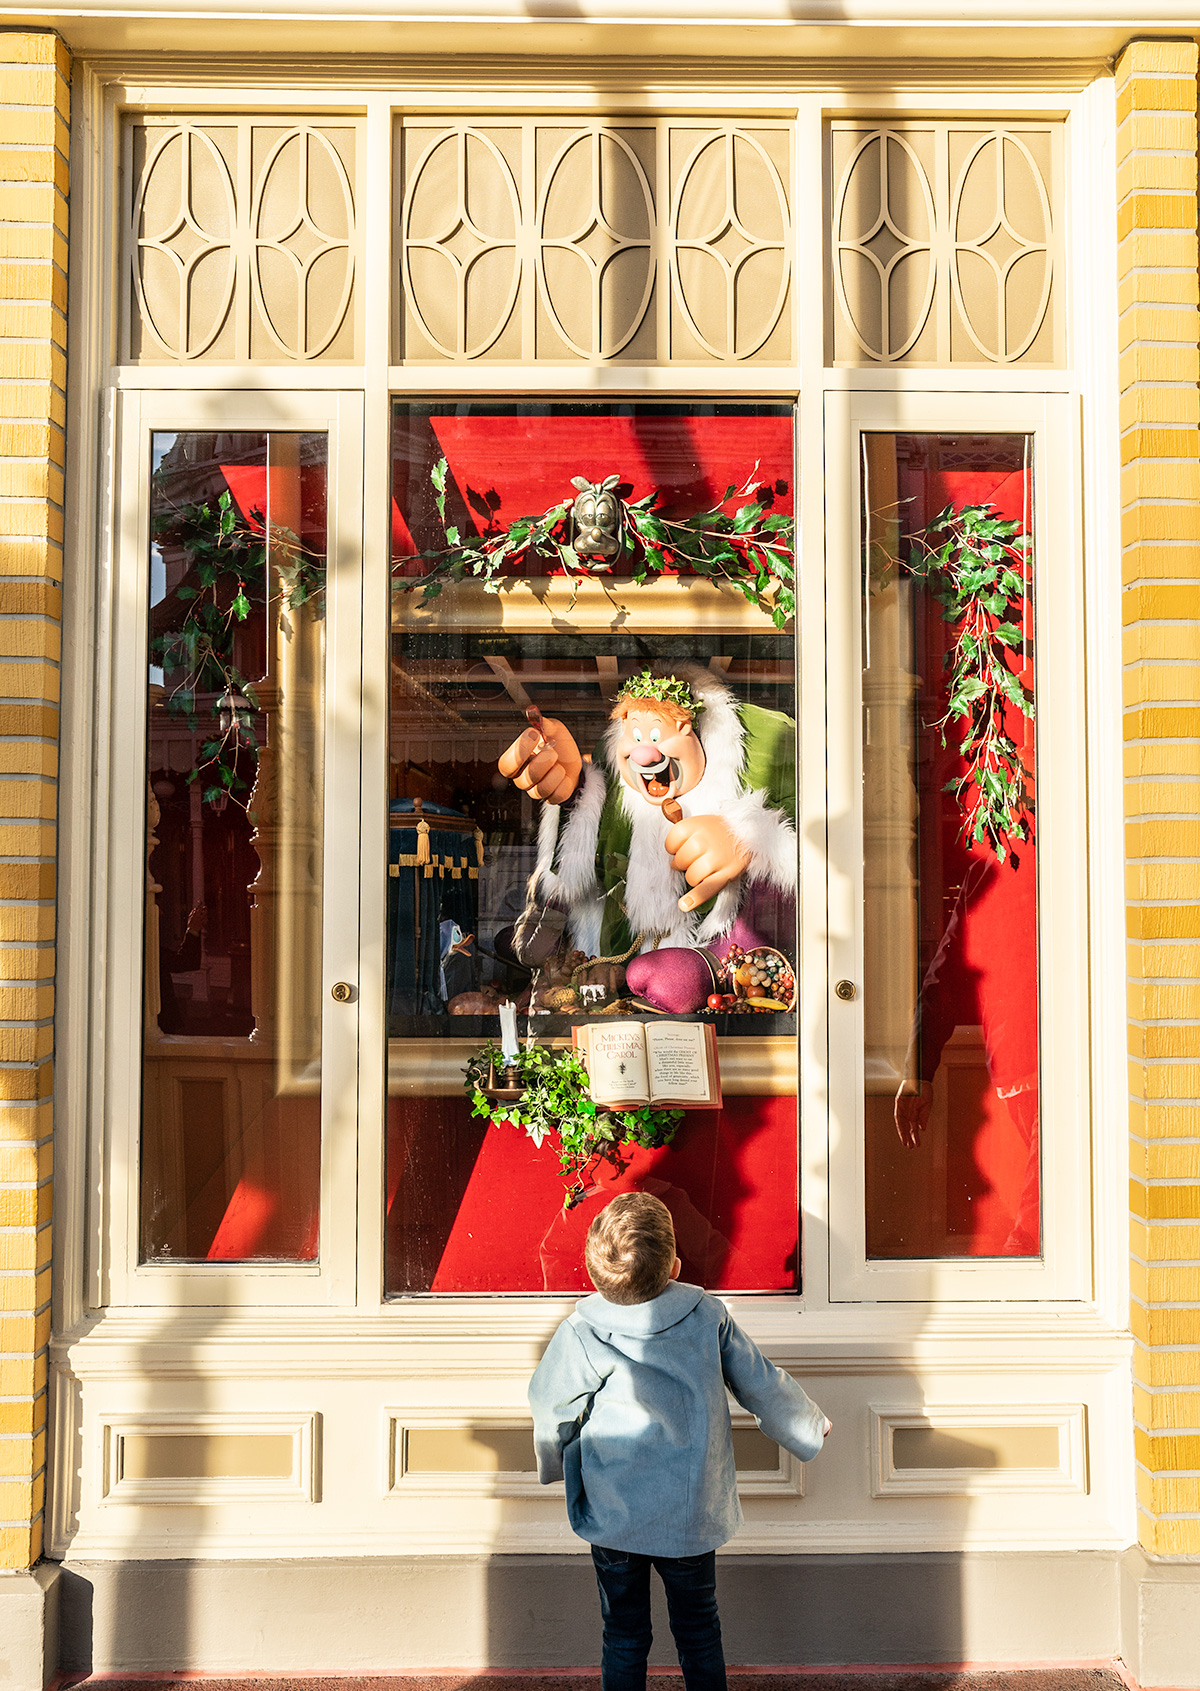 Christmas-Window-Main-Street-Magic-Kingdom